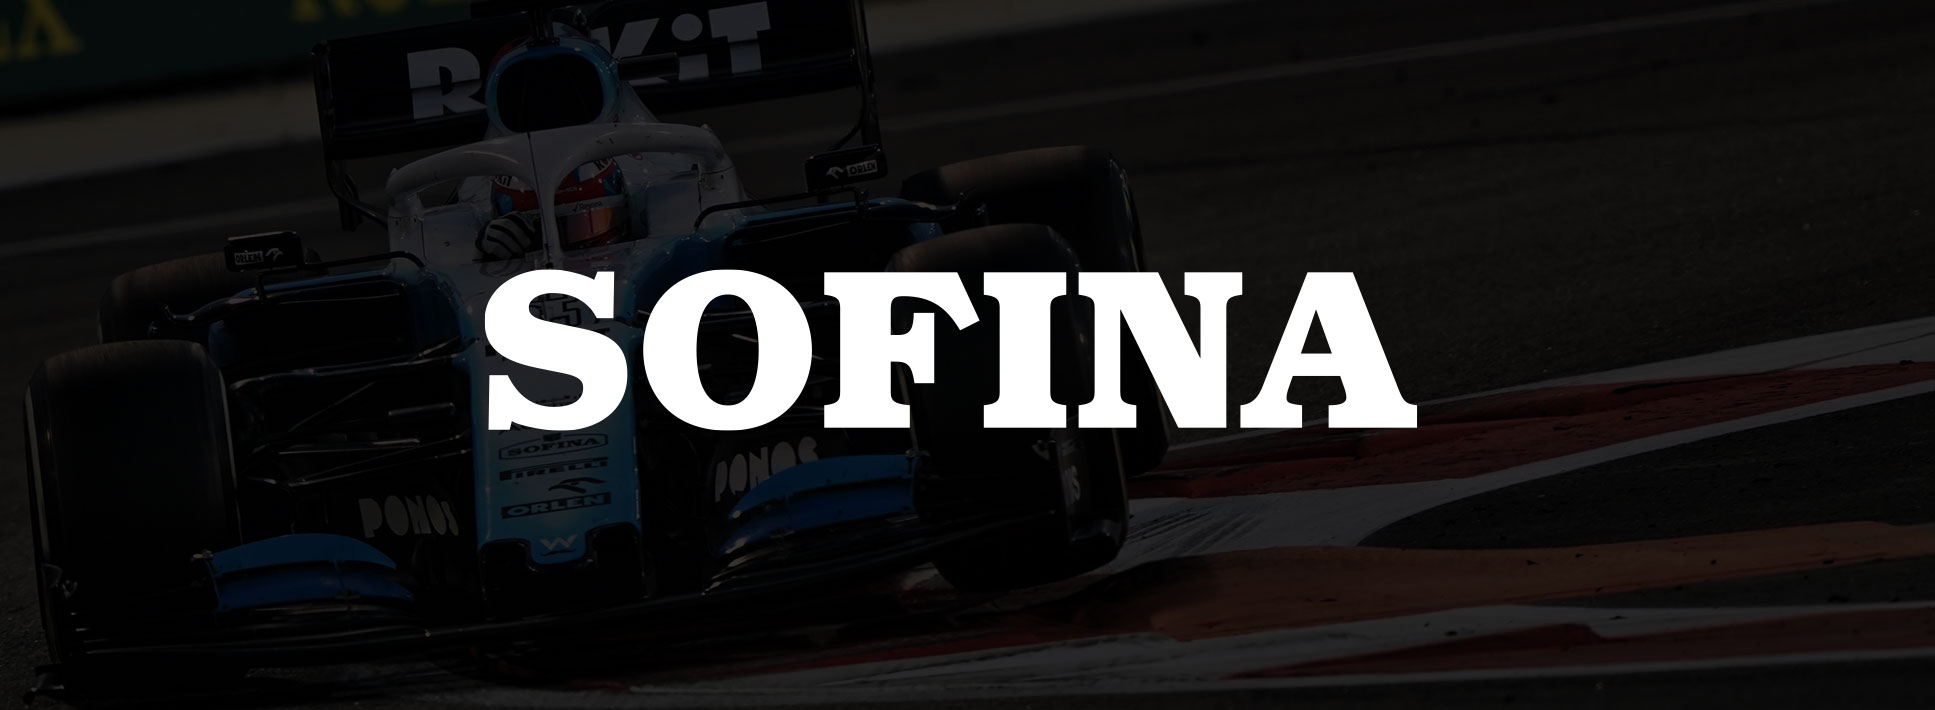 Williams Racing Reveals Sofina Partnership Expansion in 2020